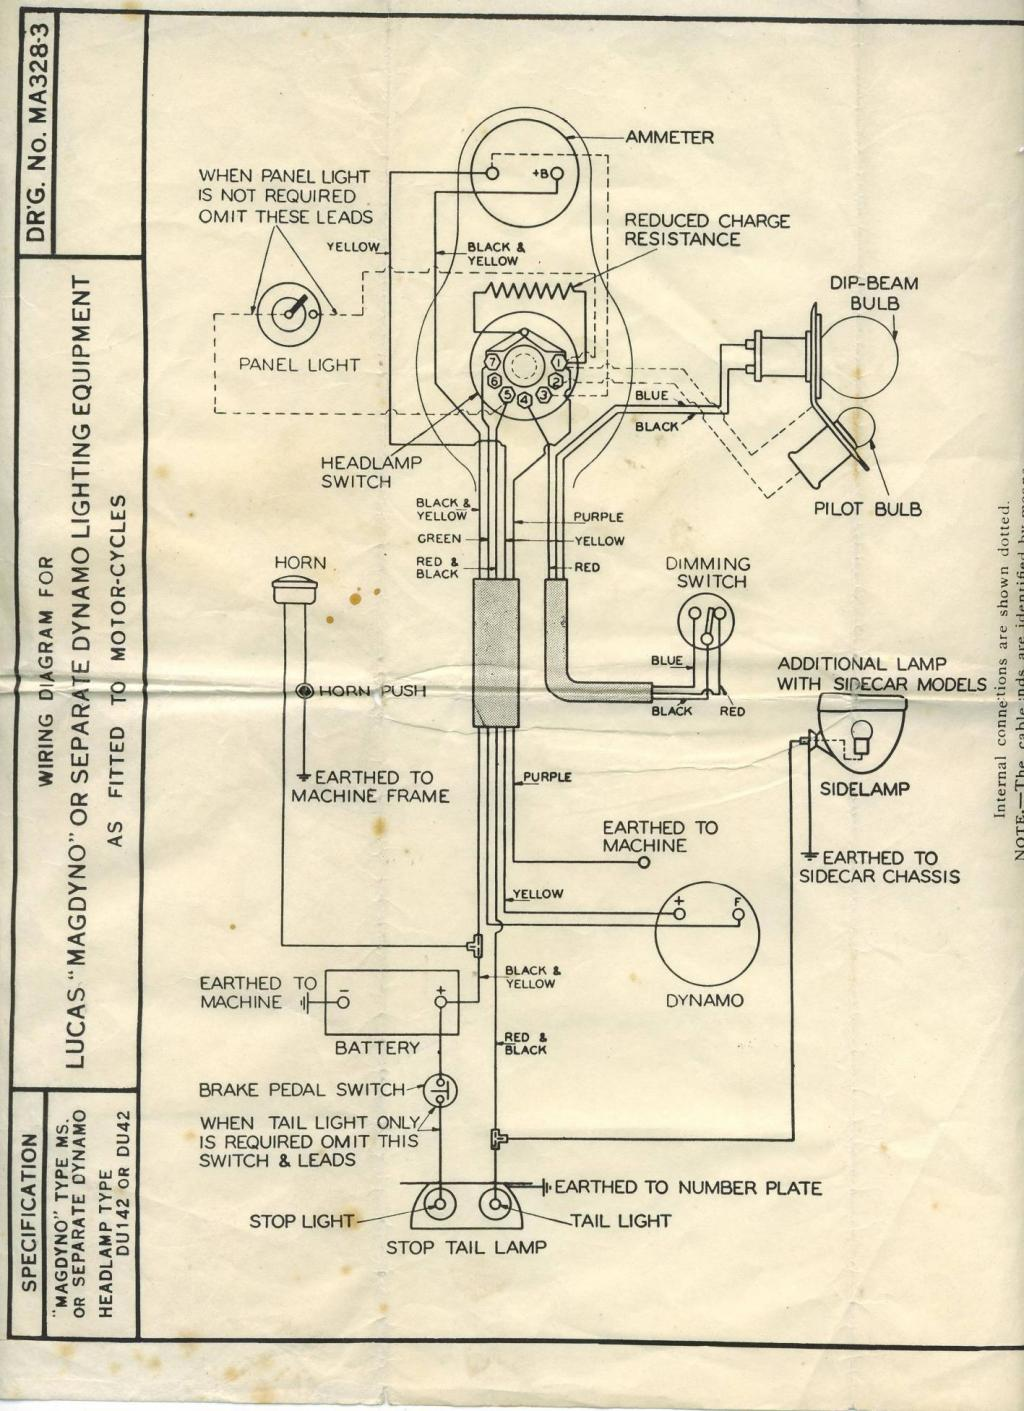 Wiring Diagram F  Lucas Magdyno Or Sep  Dynamo  Du142  Du42